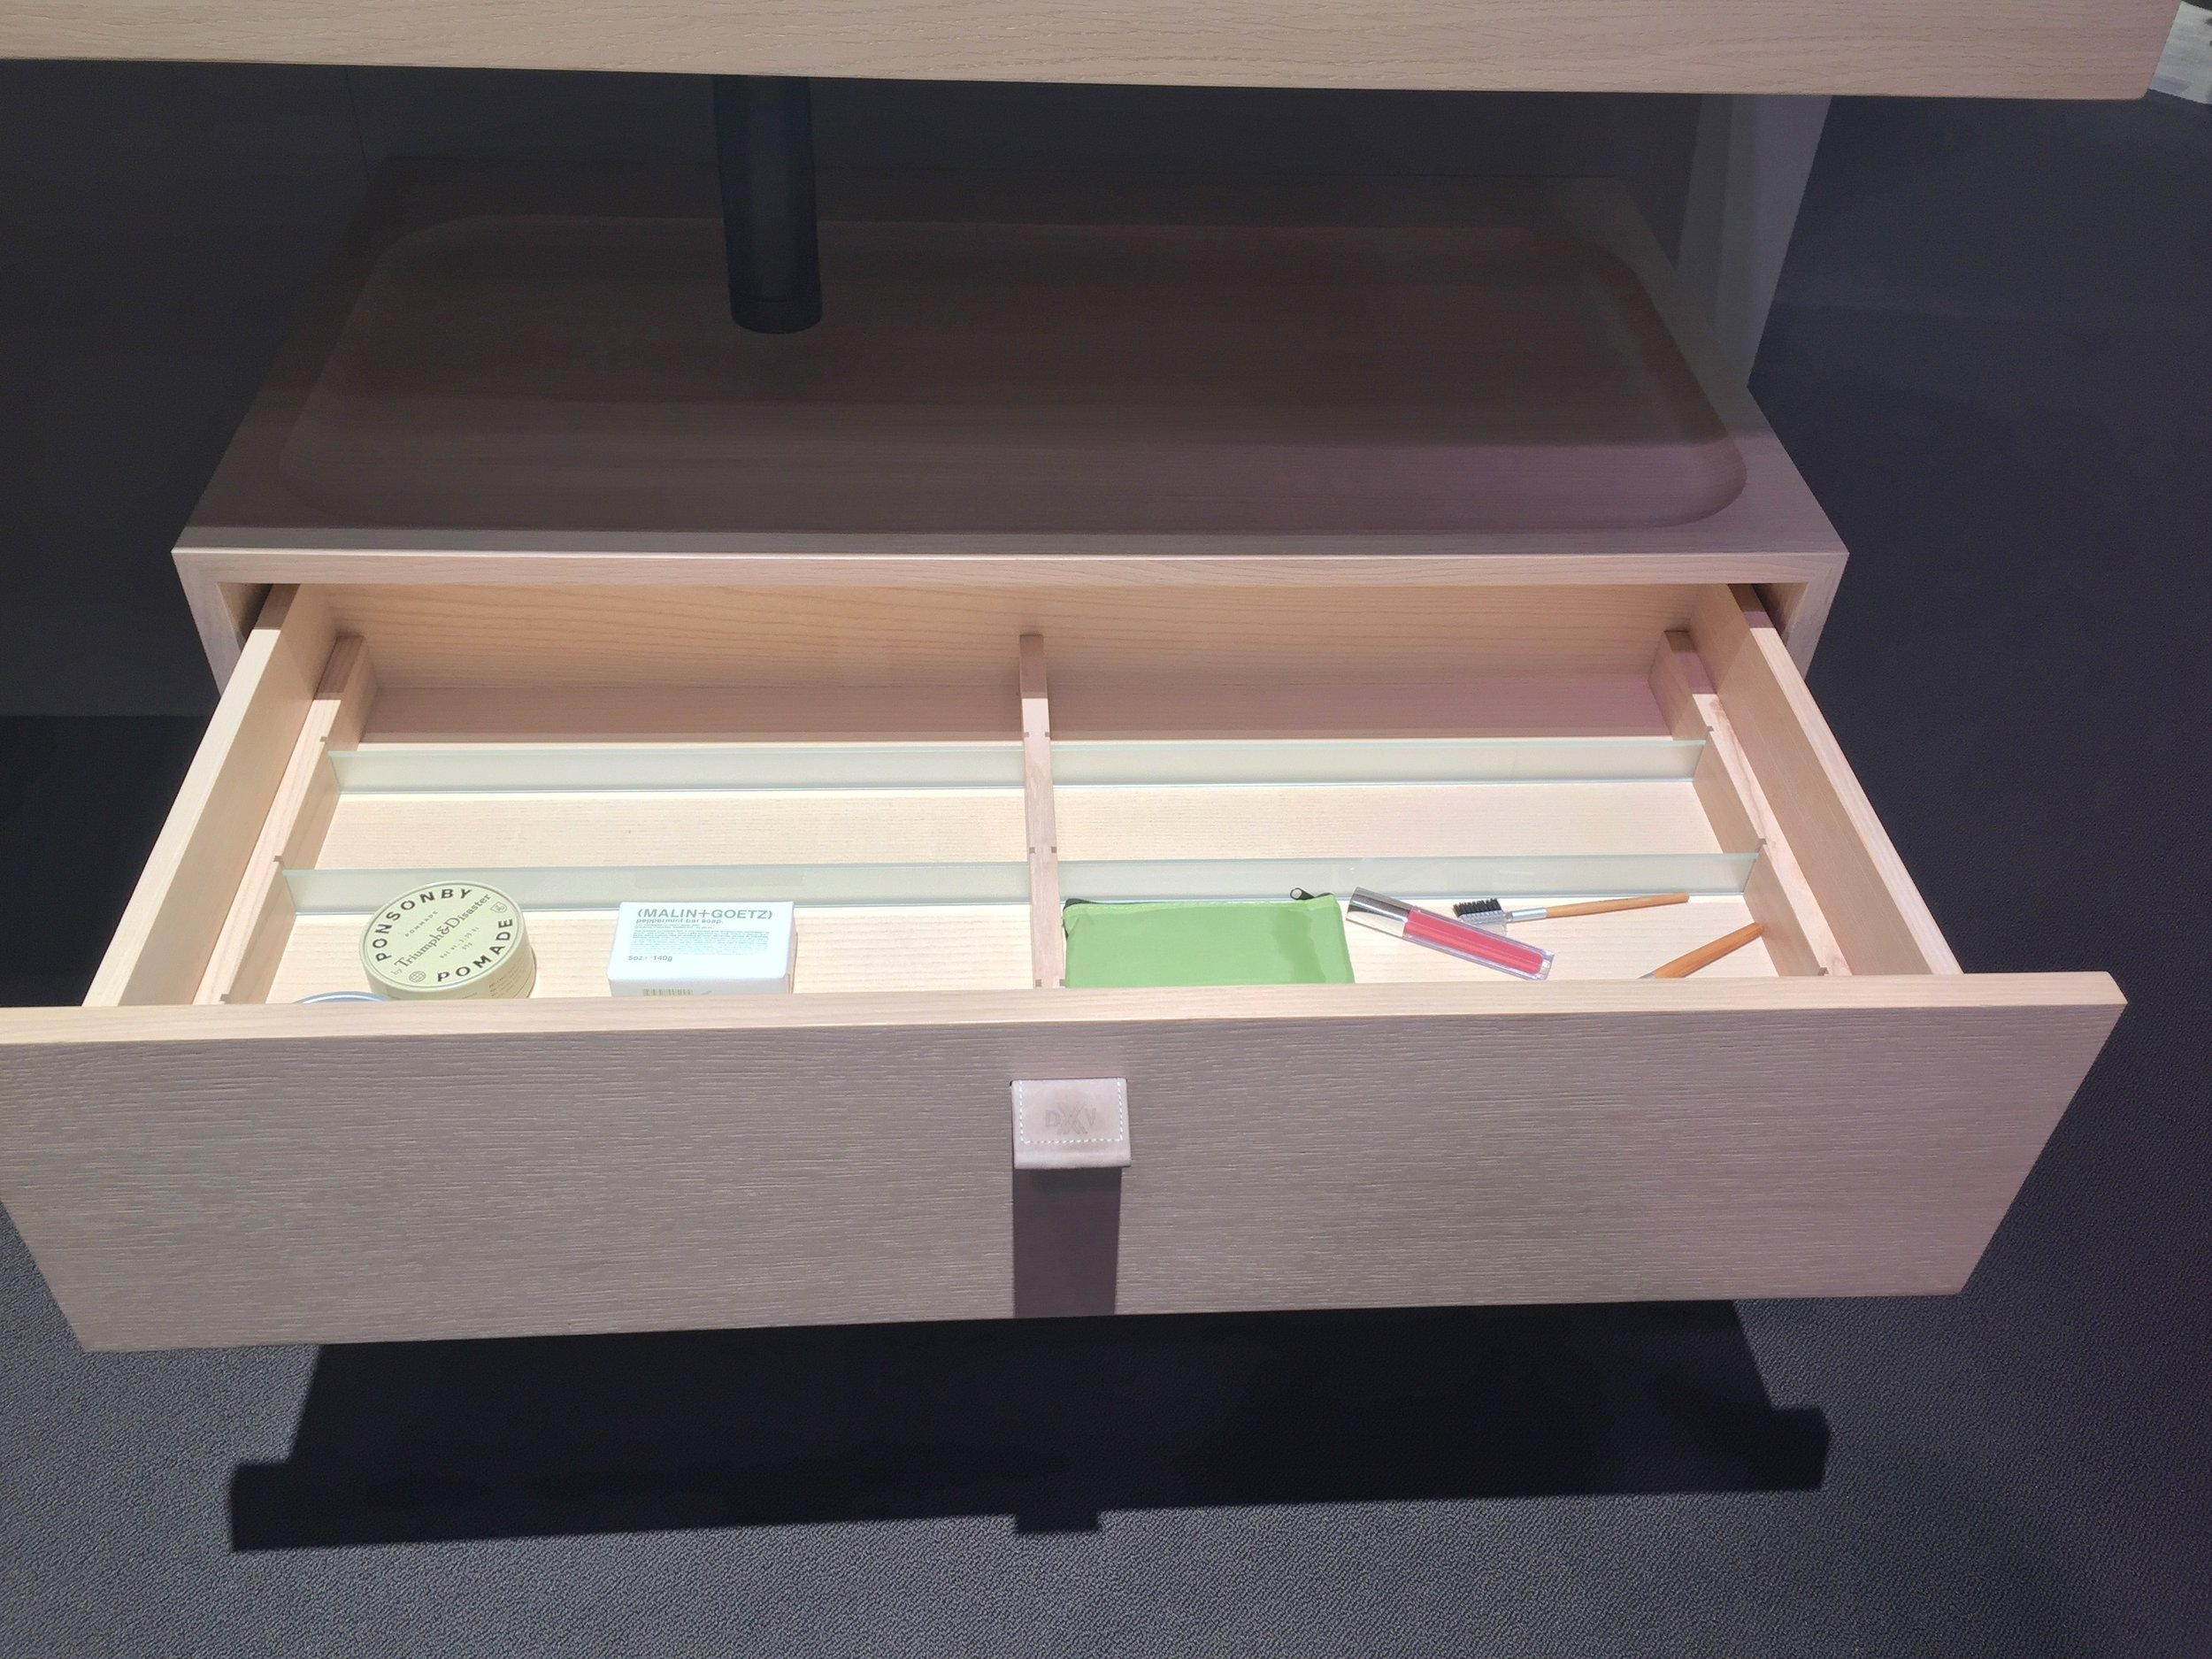 When not in use, the tray from the sink can nestle right on top of the wall-mounted drawer, which is kitted out with clever storage compartments.